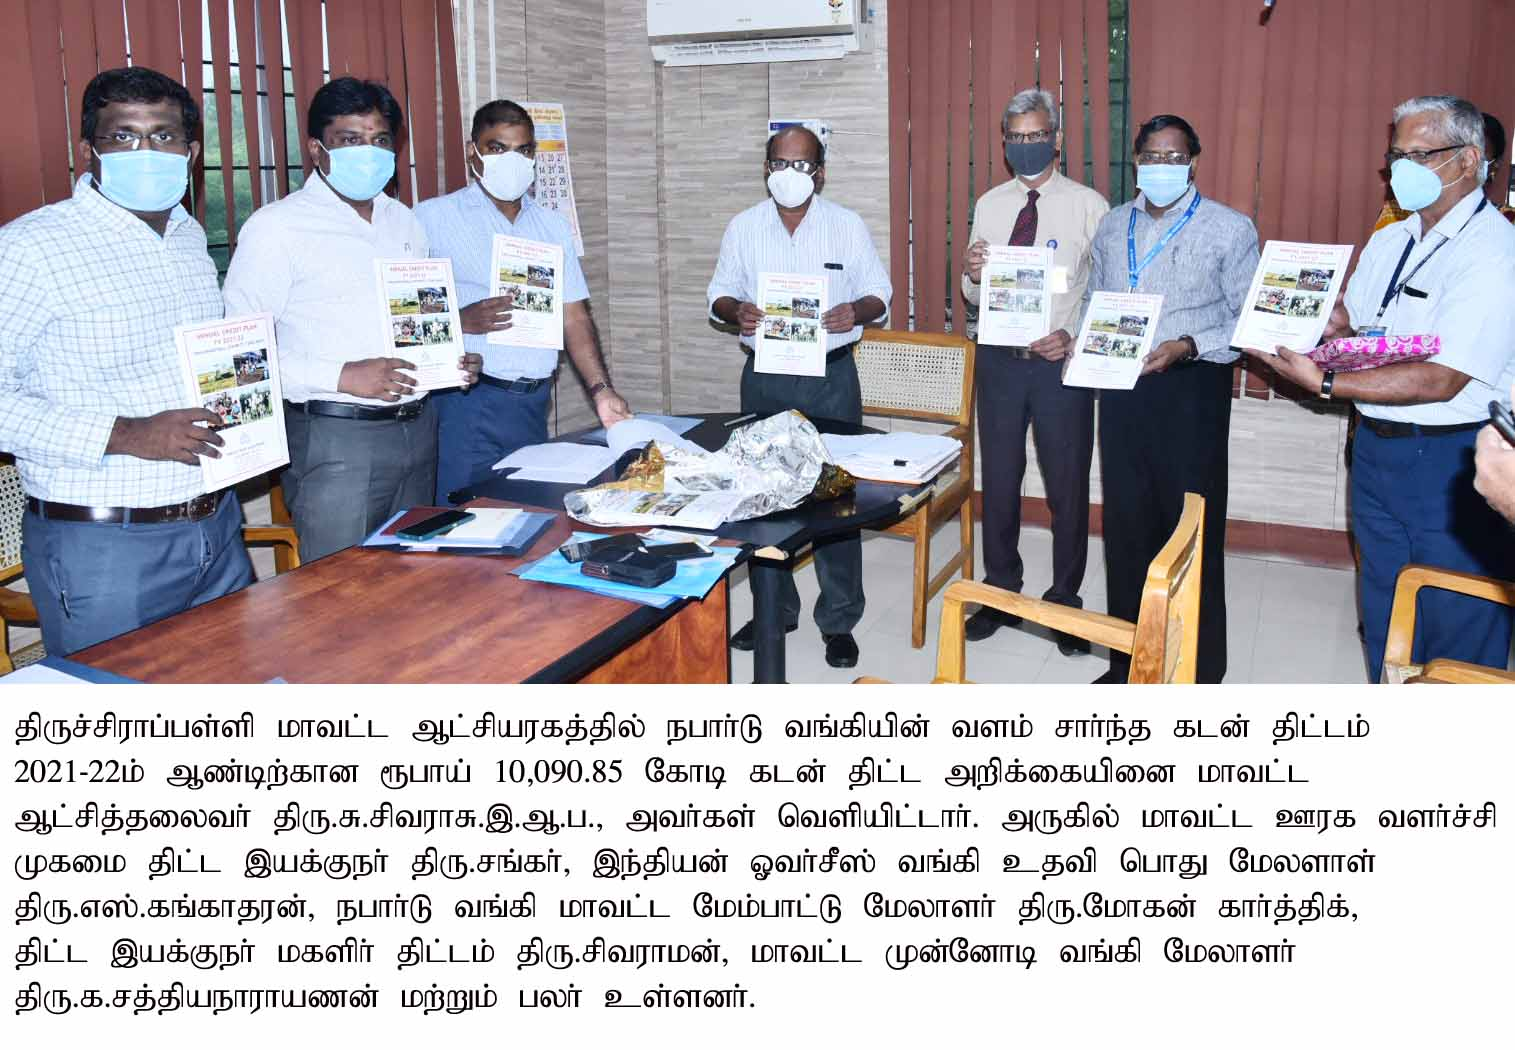 District Collector Launched Annual Credit Plan of Rs 10,090.85 Crore for FY 2021-22 in Tiruchirappalli District